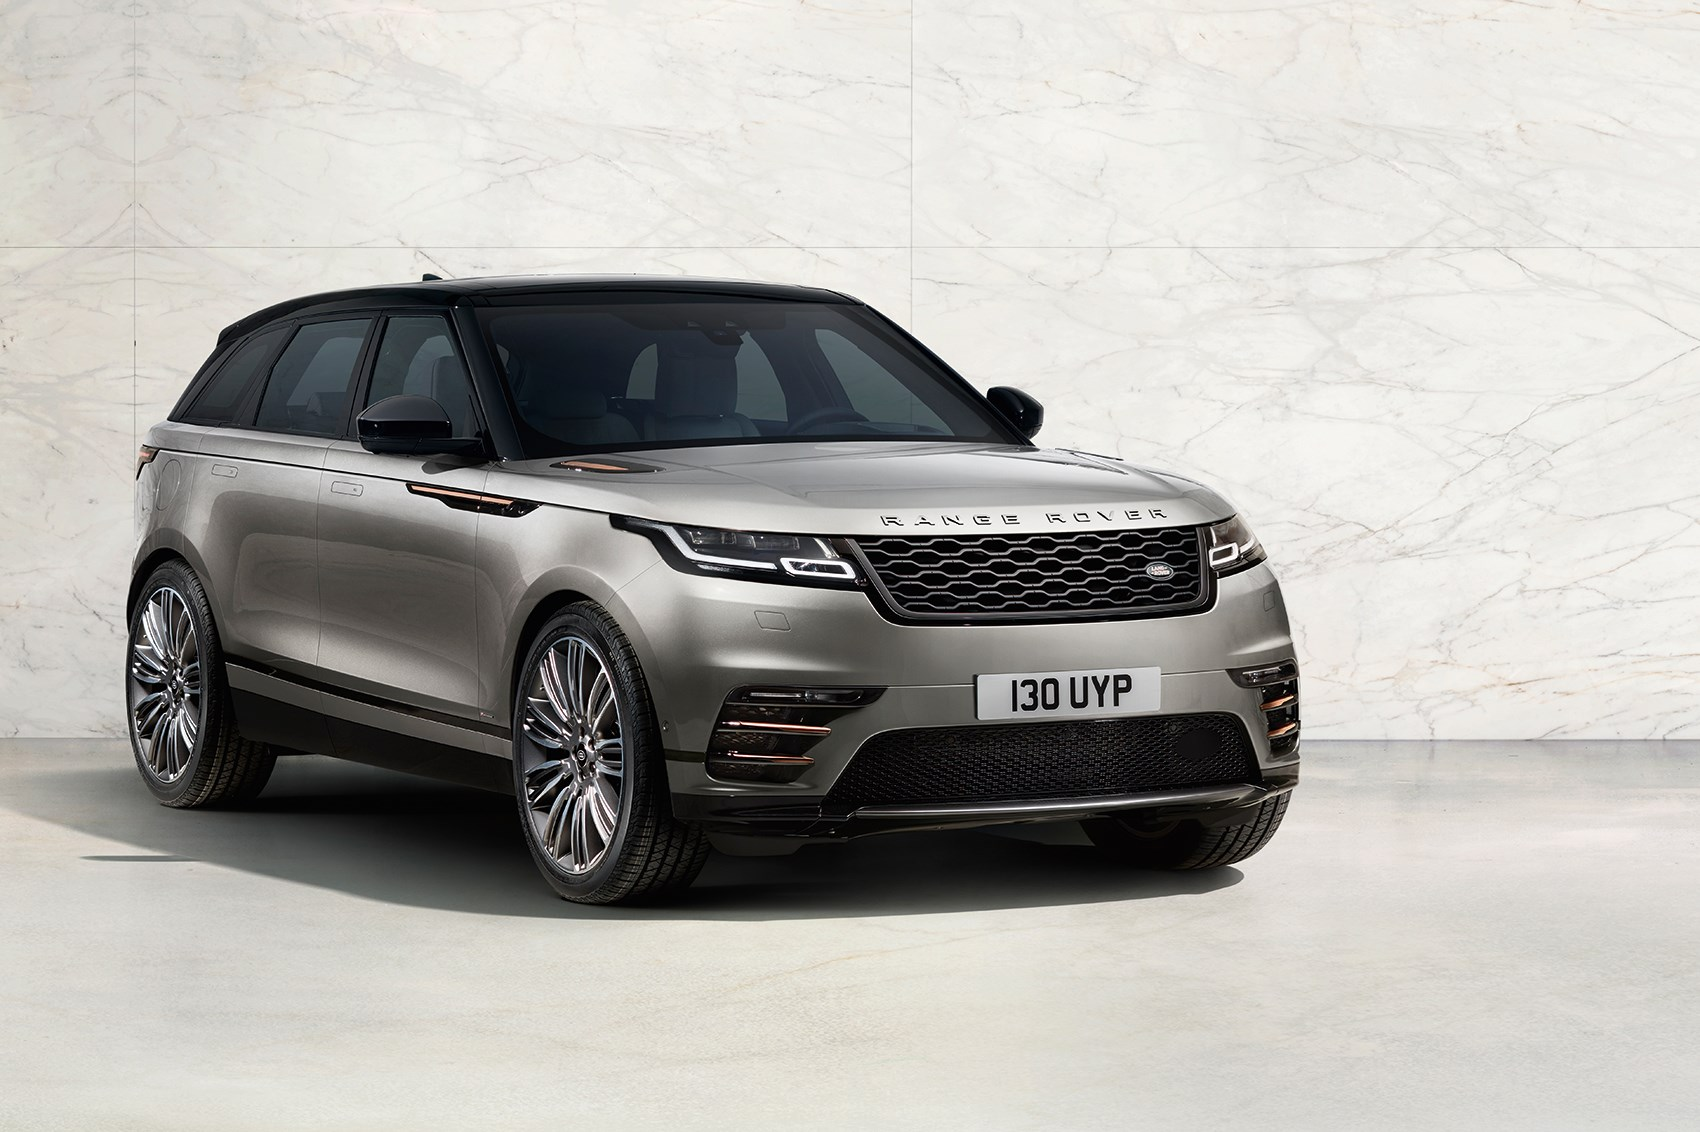 new range rover velar revealed in pictures car magazine. Black Bedroom Furniture Sets. Home Design Ideas